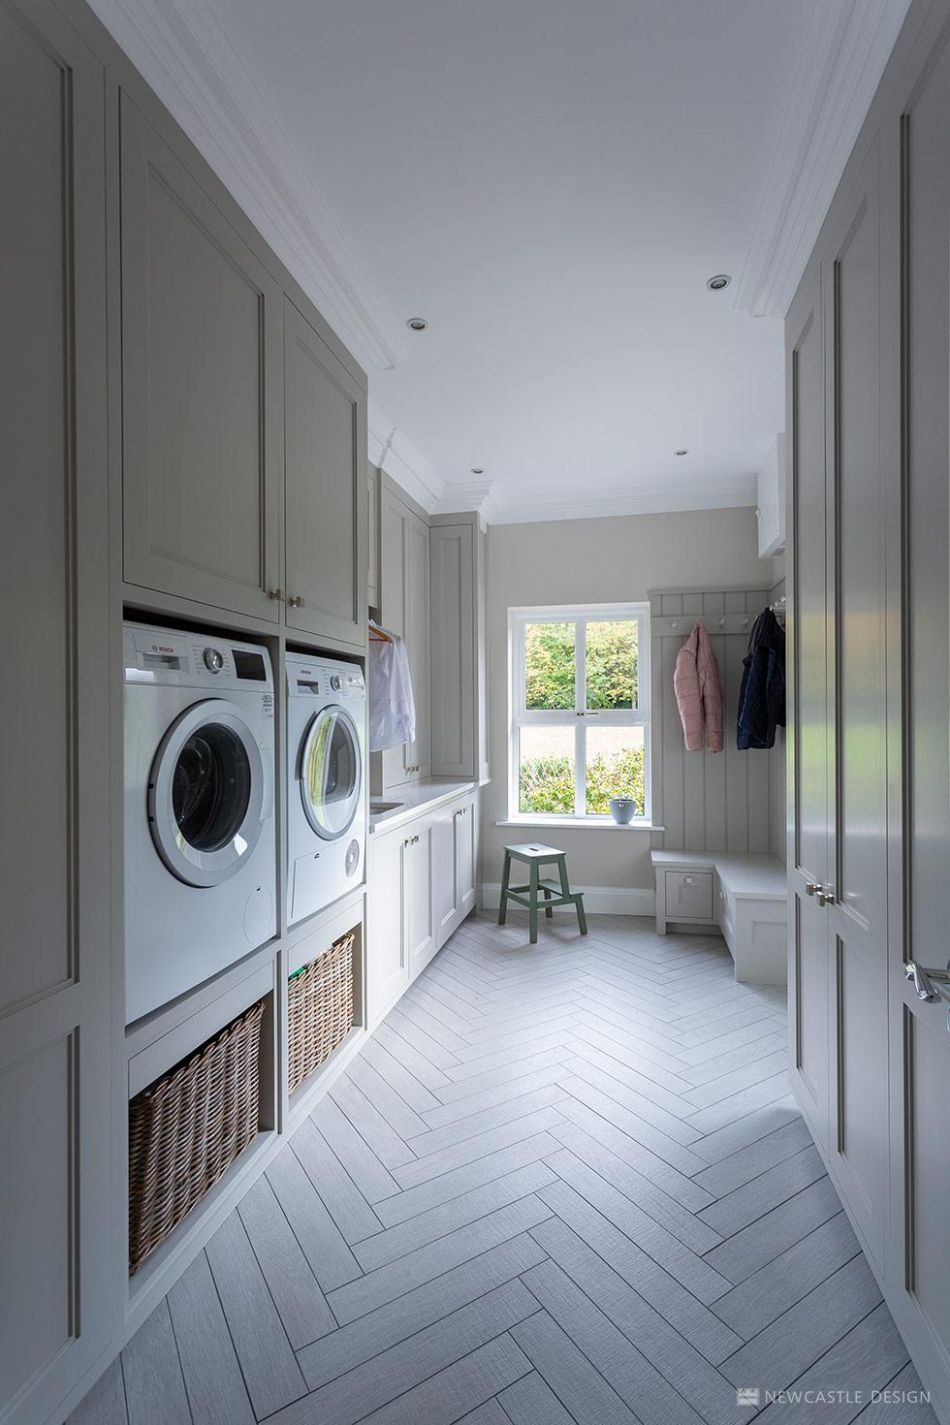 Utility, Laundry & Pantry Room Storage | Newcastle Design Ireland